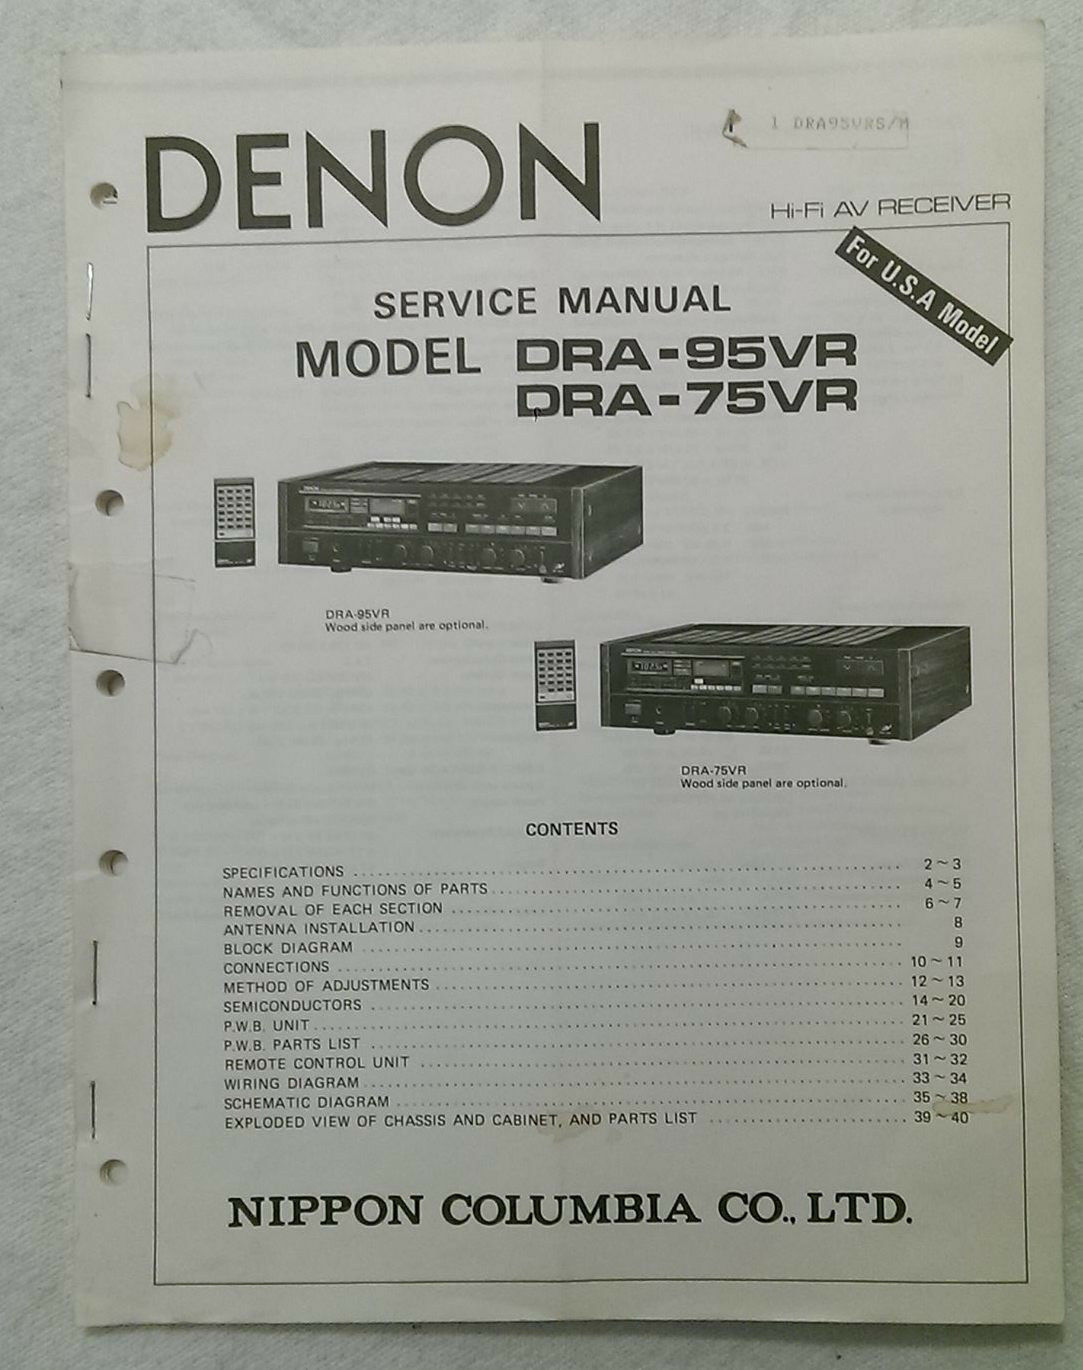 Denon DRA-95VR/DRA-75VR Service Manual 1 of 1Only 1 available See More